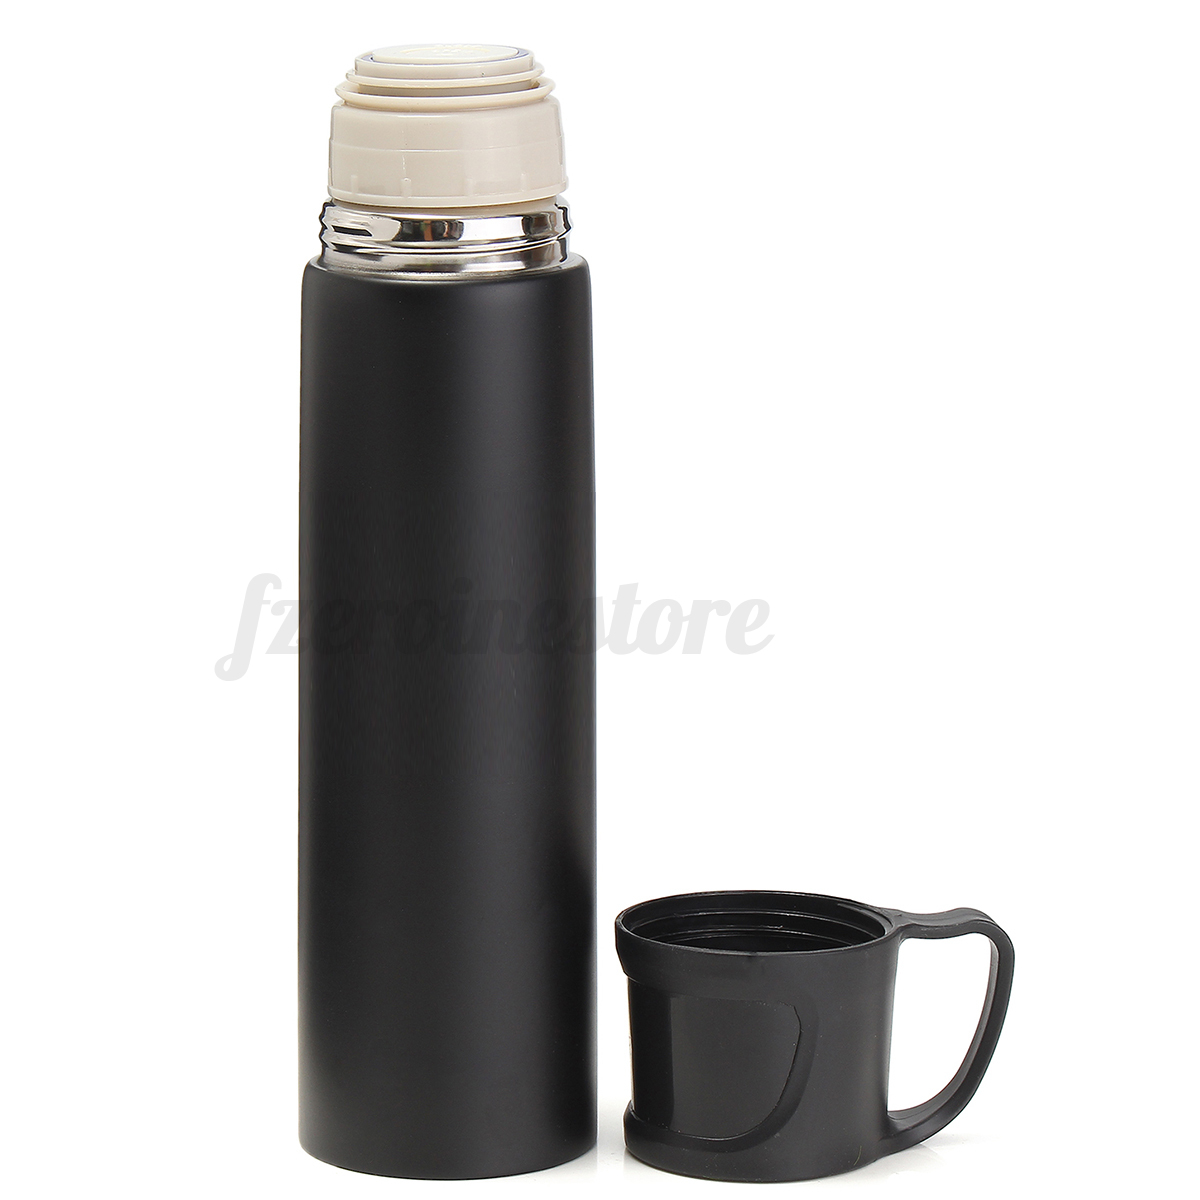 Thermos termos borraccia termica acciaio inox per caffe for Thermos caffe